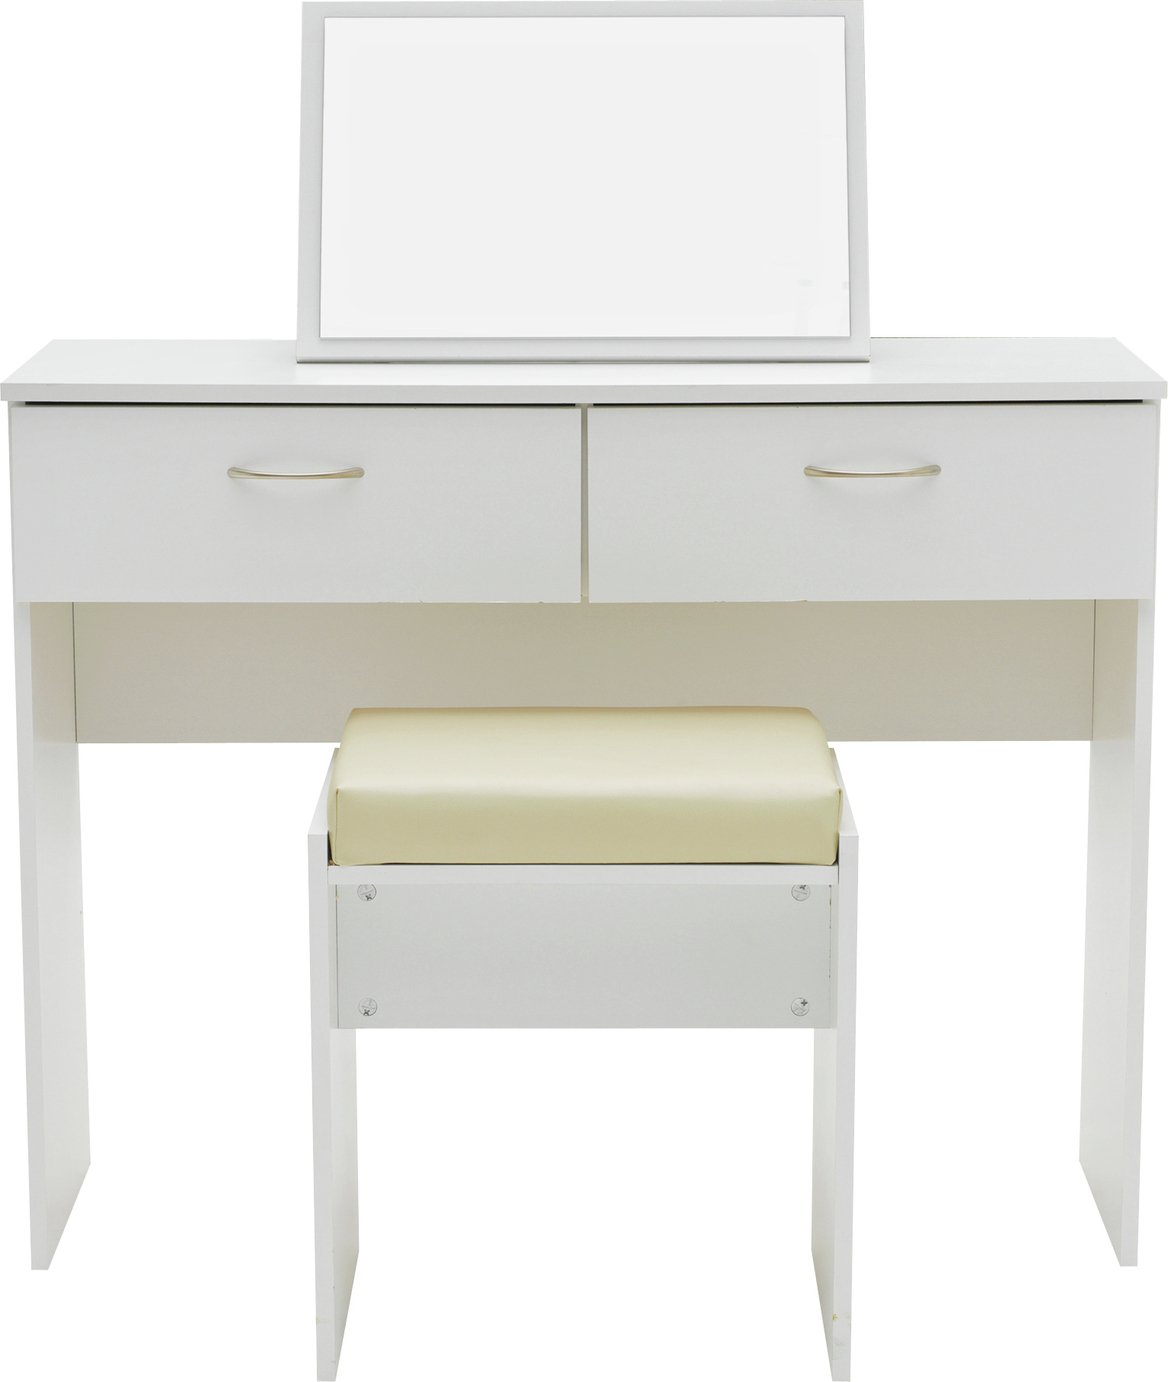 Image of Collection Cheval Dressing Table, Stool & Mirror - White